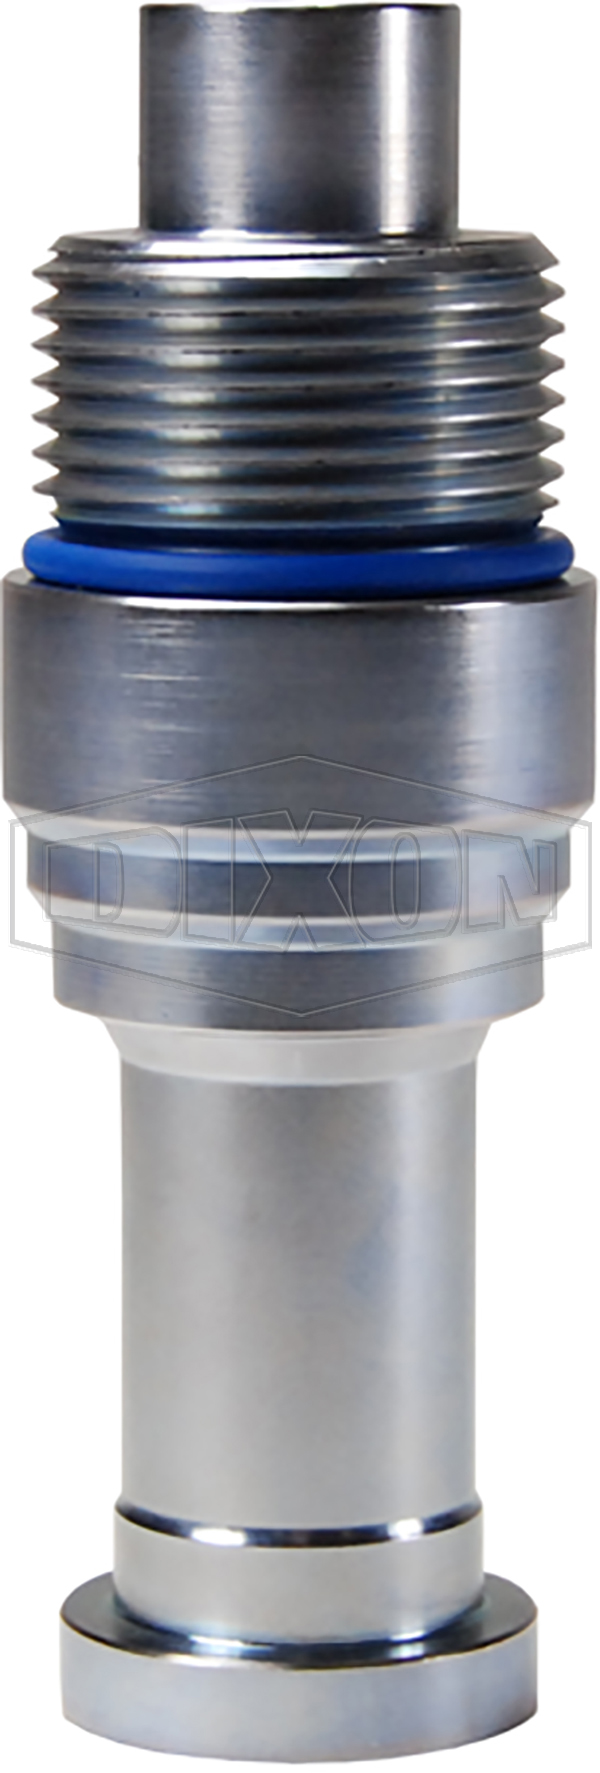 VEP Series Flange Head Plug